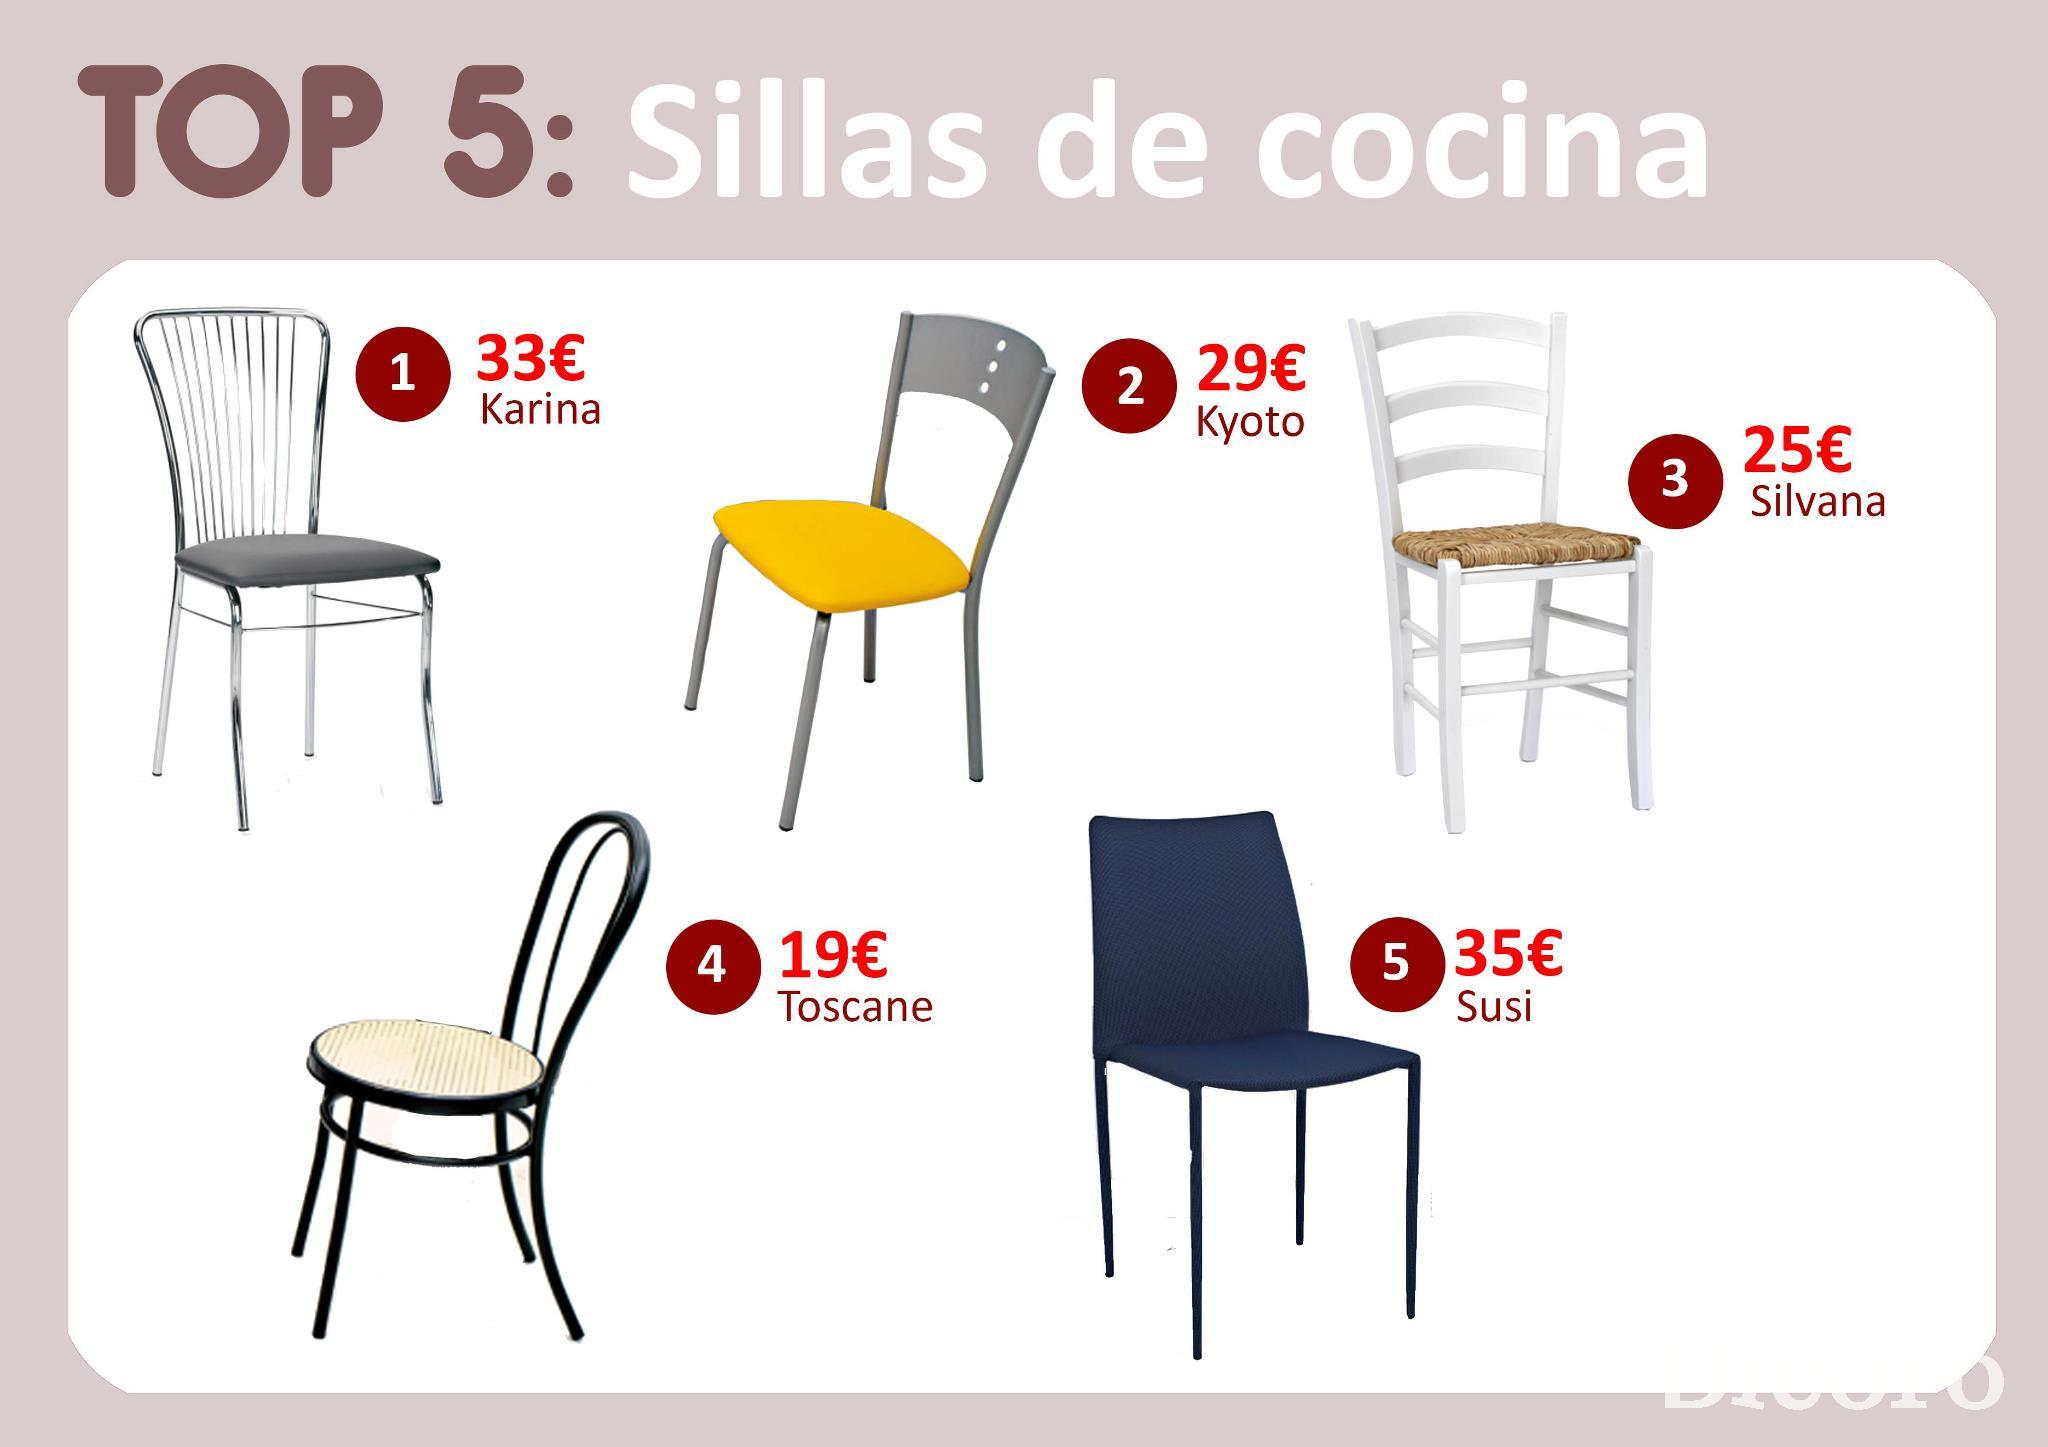 Top 5 sillas blog con ideas de decoracion ideas para for Sillas de cocina precios